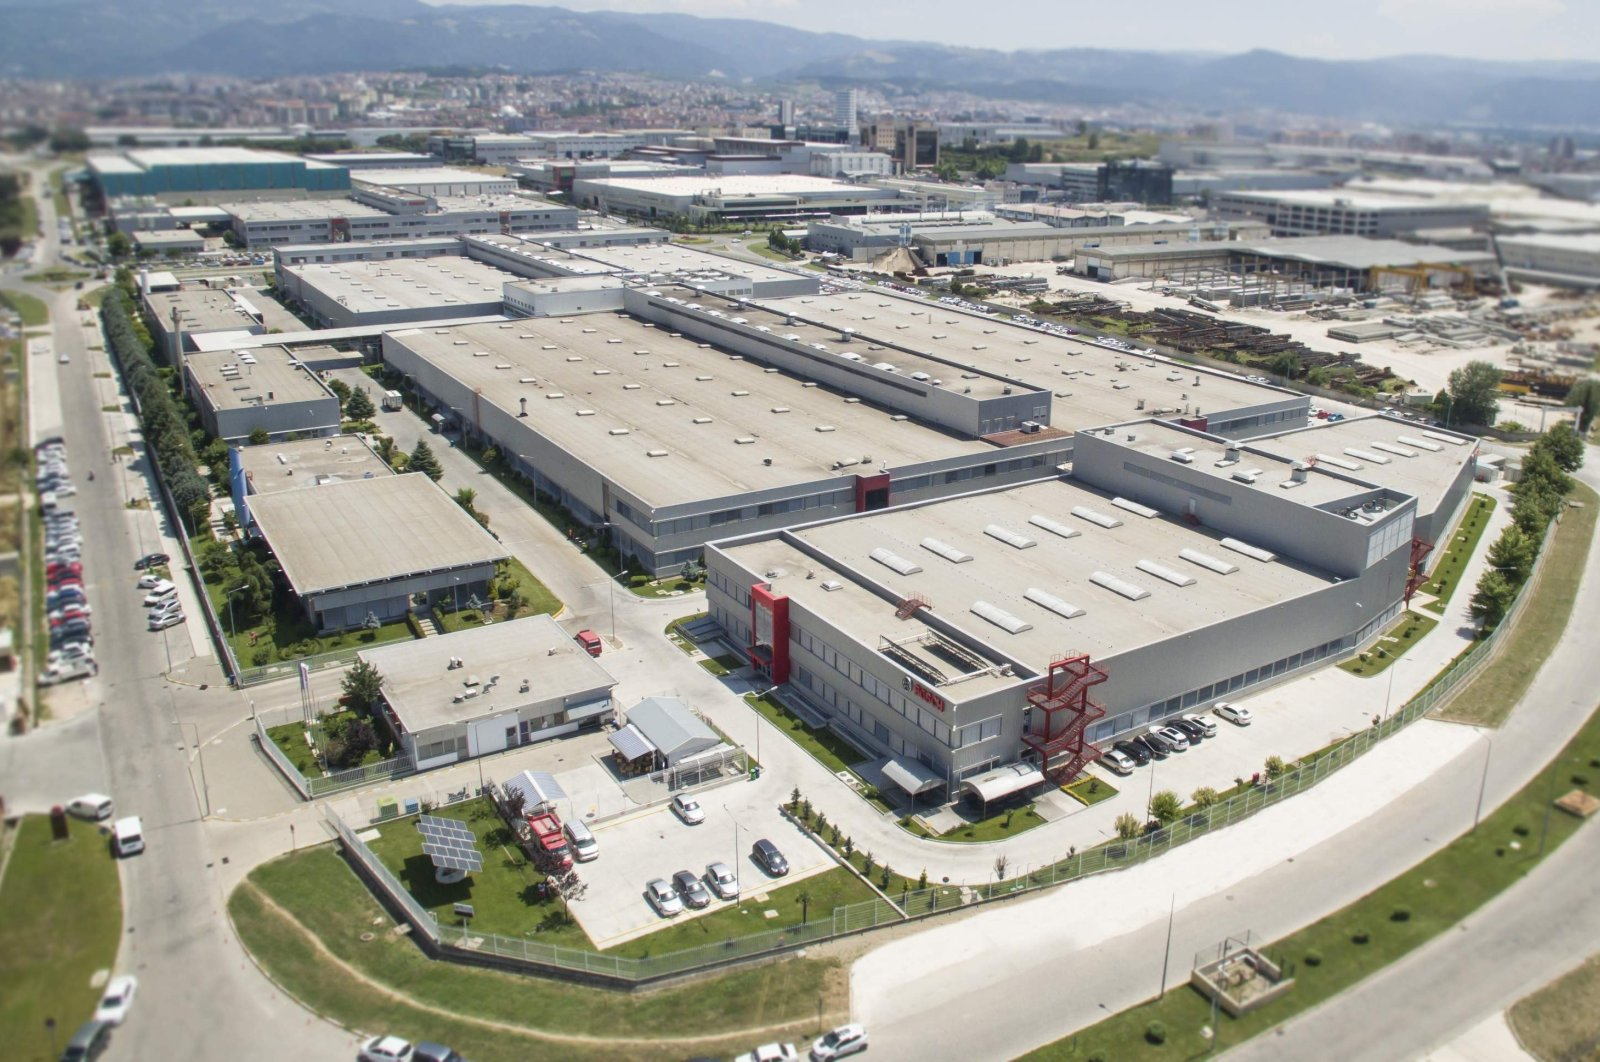 A view of Bosch's factory in Turkey's northwestern Bursa province, July 20, 2017. (İHA Photo)